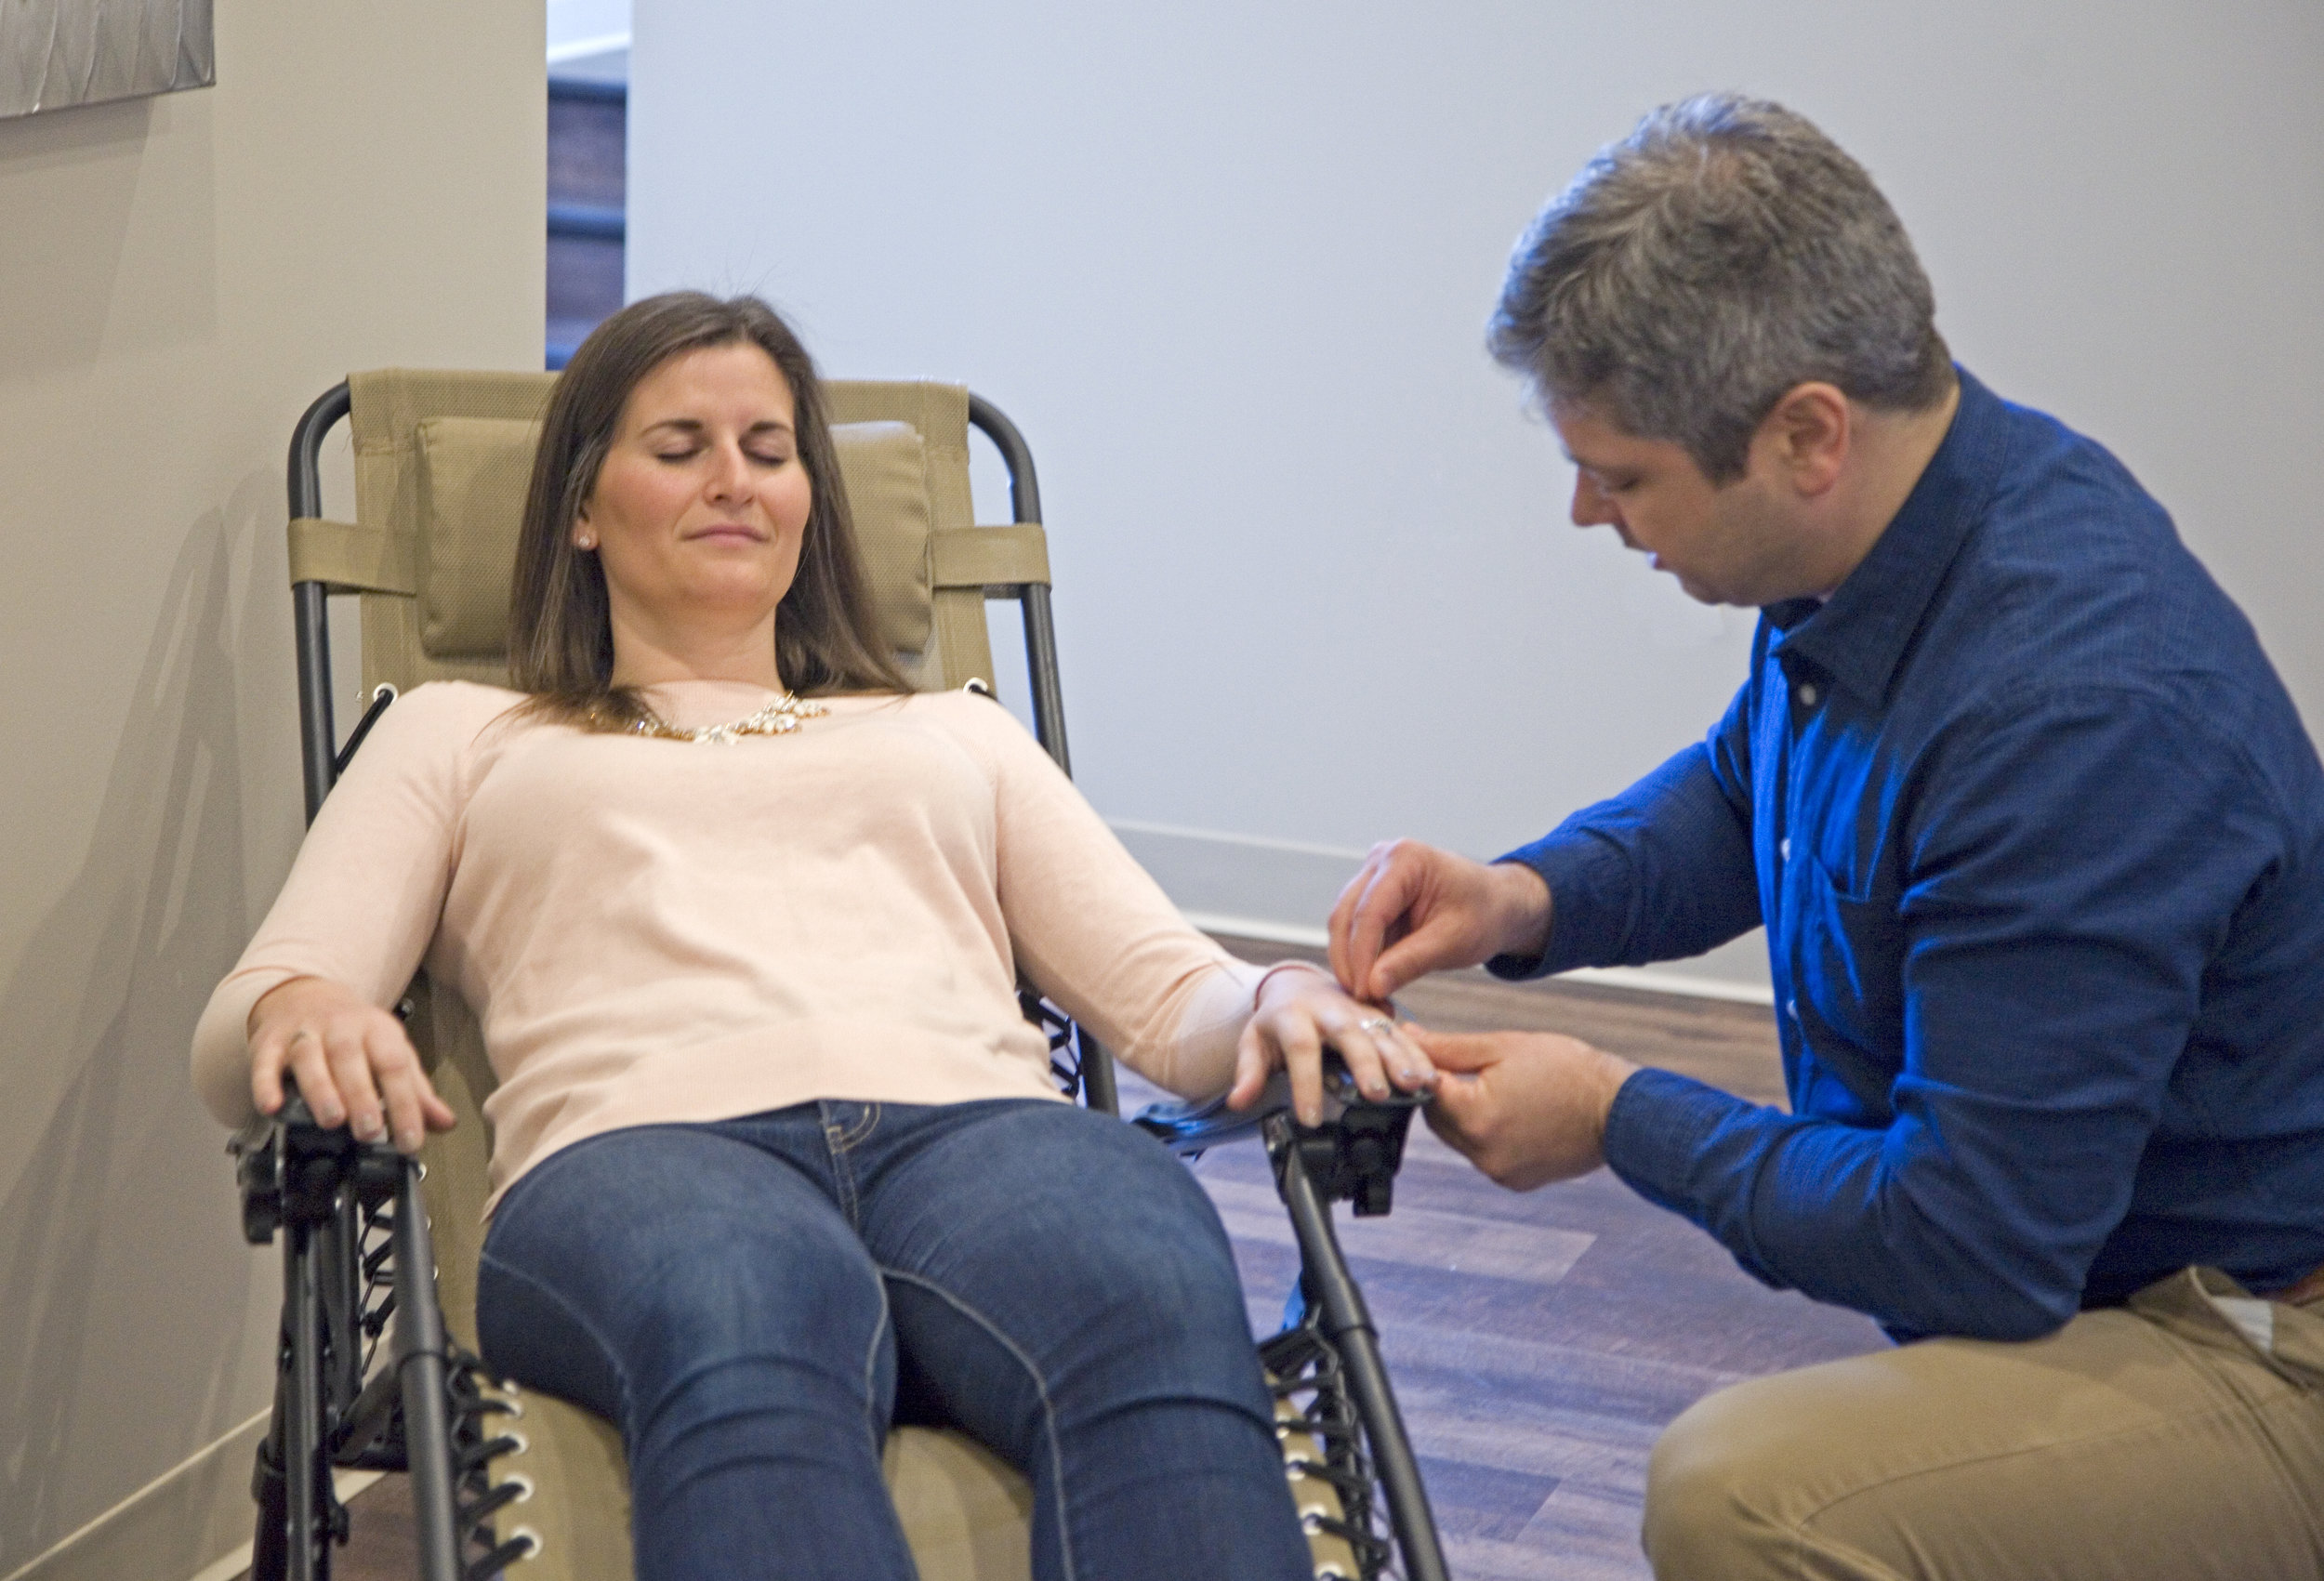 Acupuncturist Stephen Durell during treatment with a client at Grand Rapids Natural Health (photo)